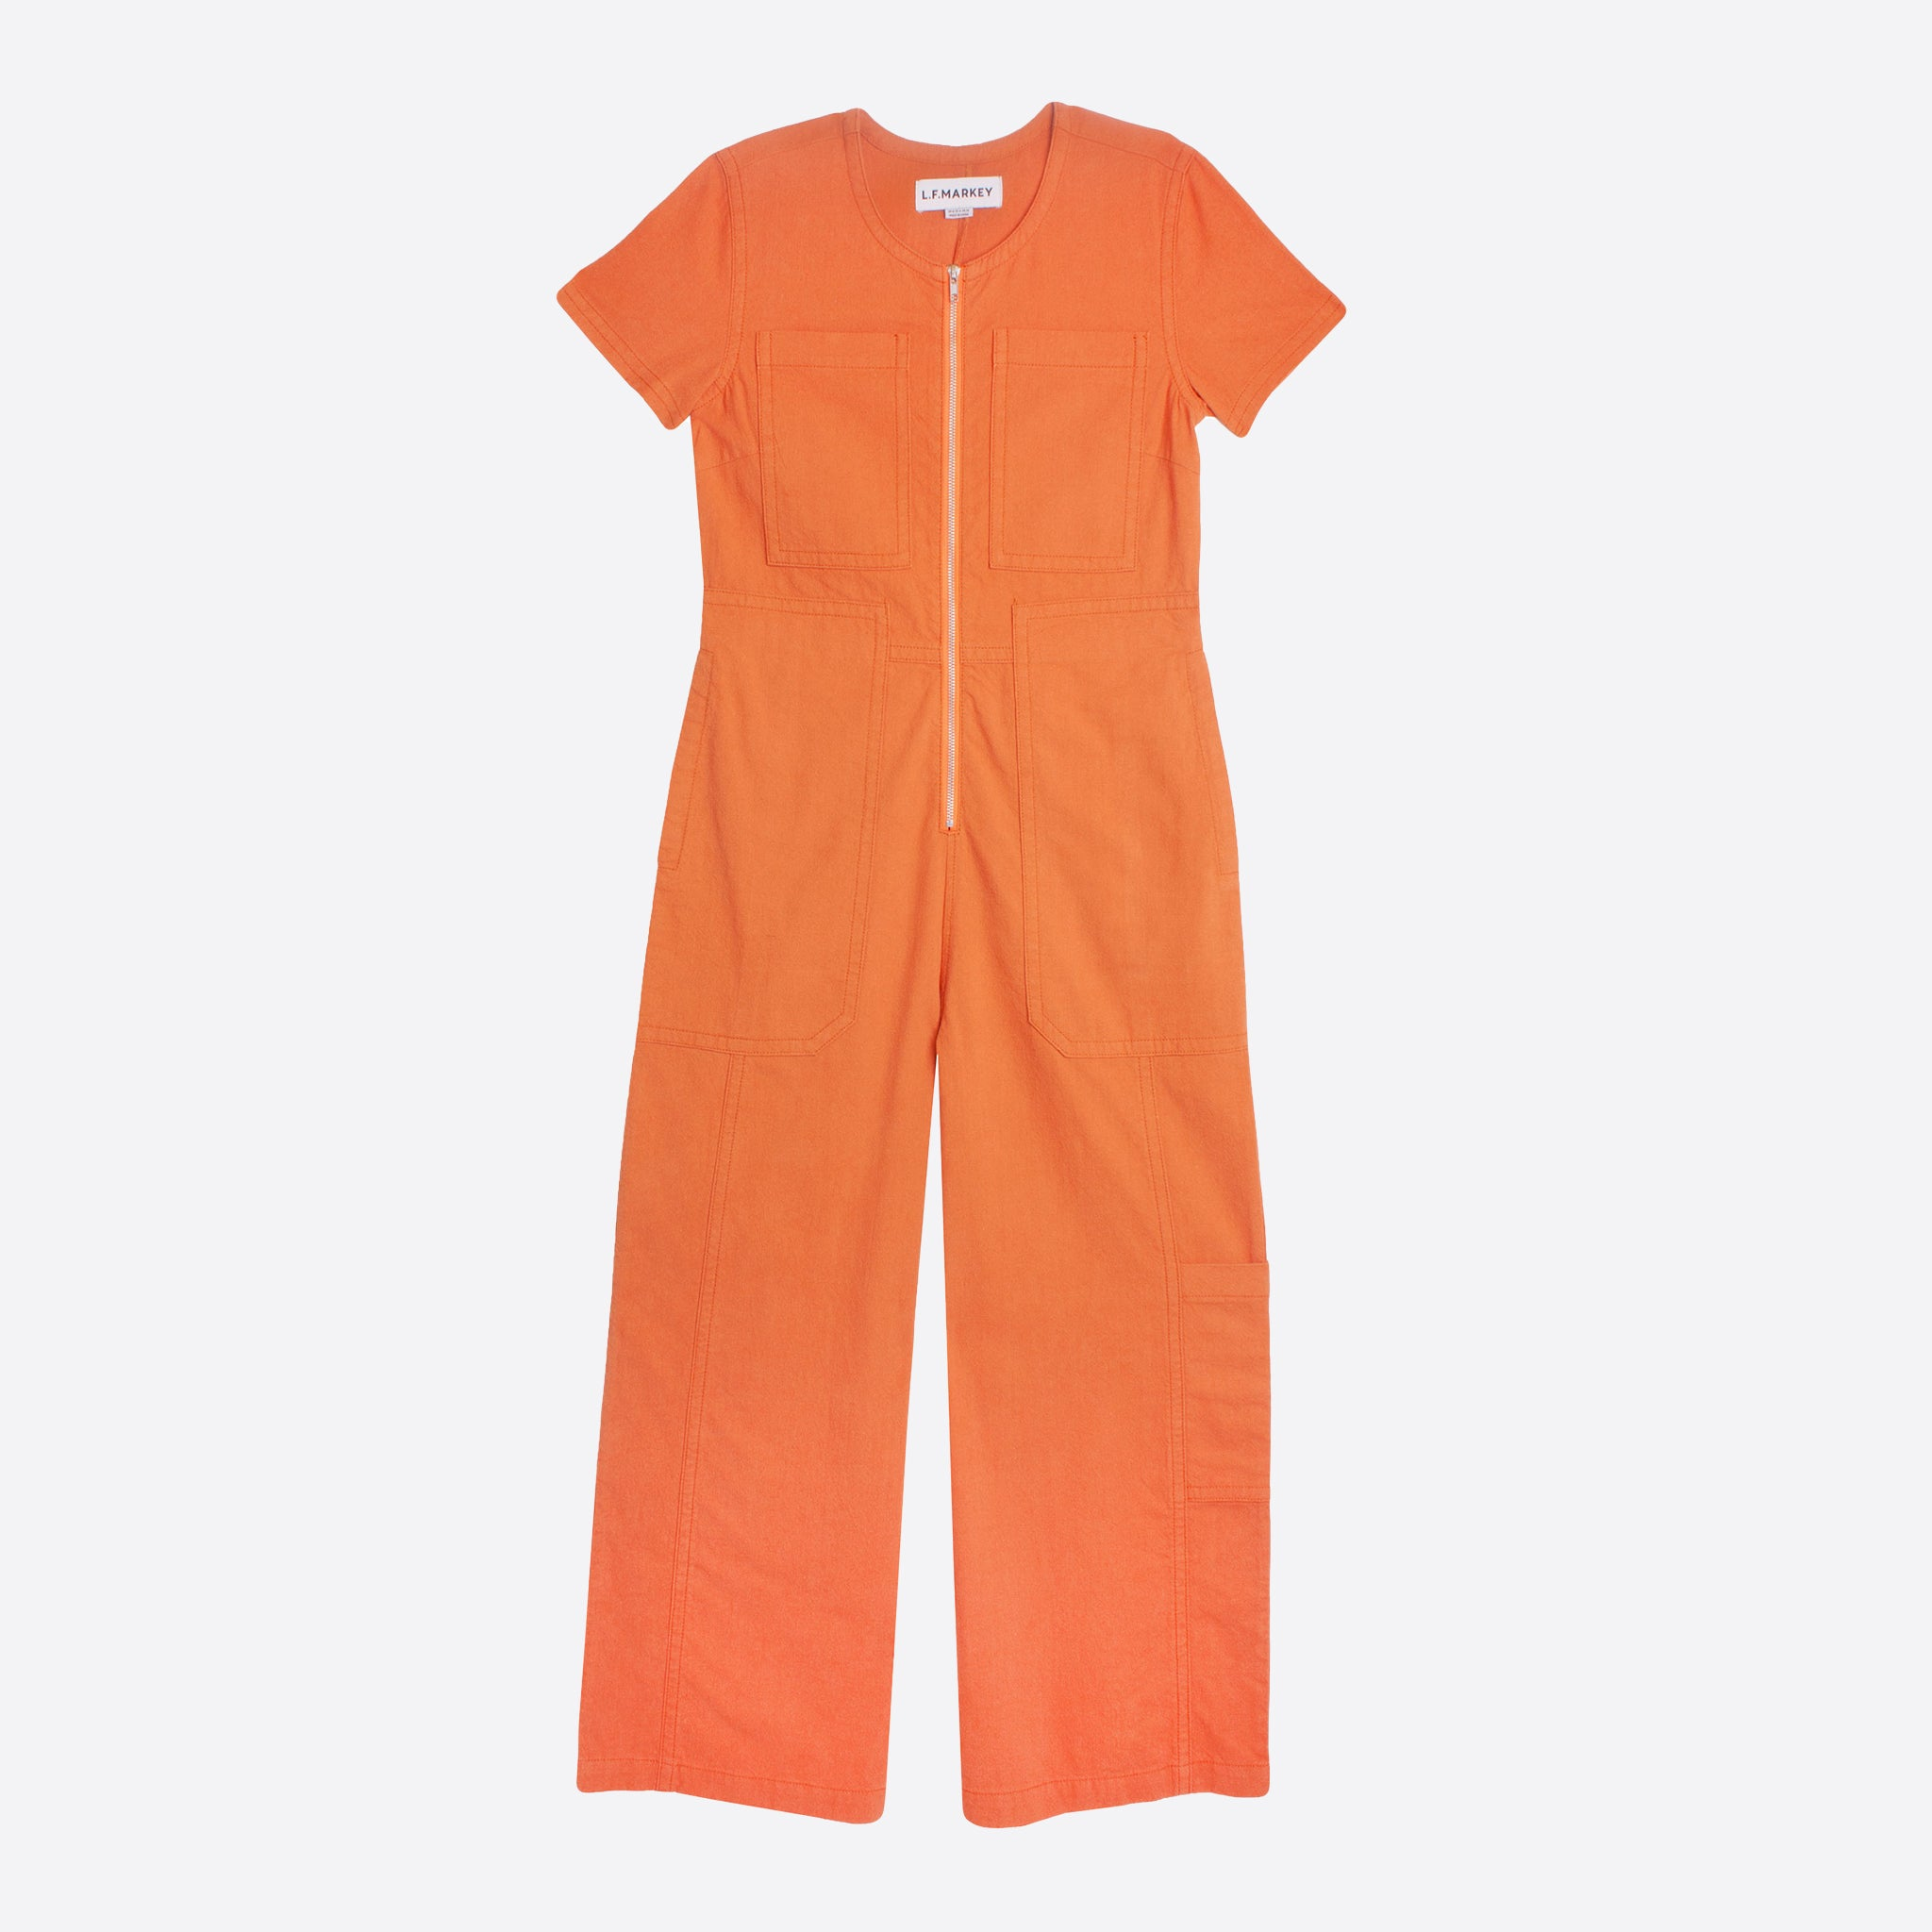 LF Markey Felix Boilersuit in Burnt Orange